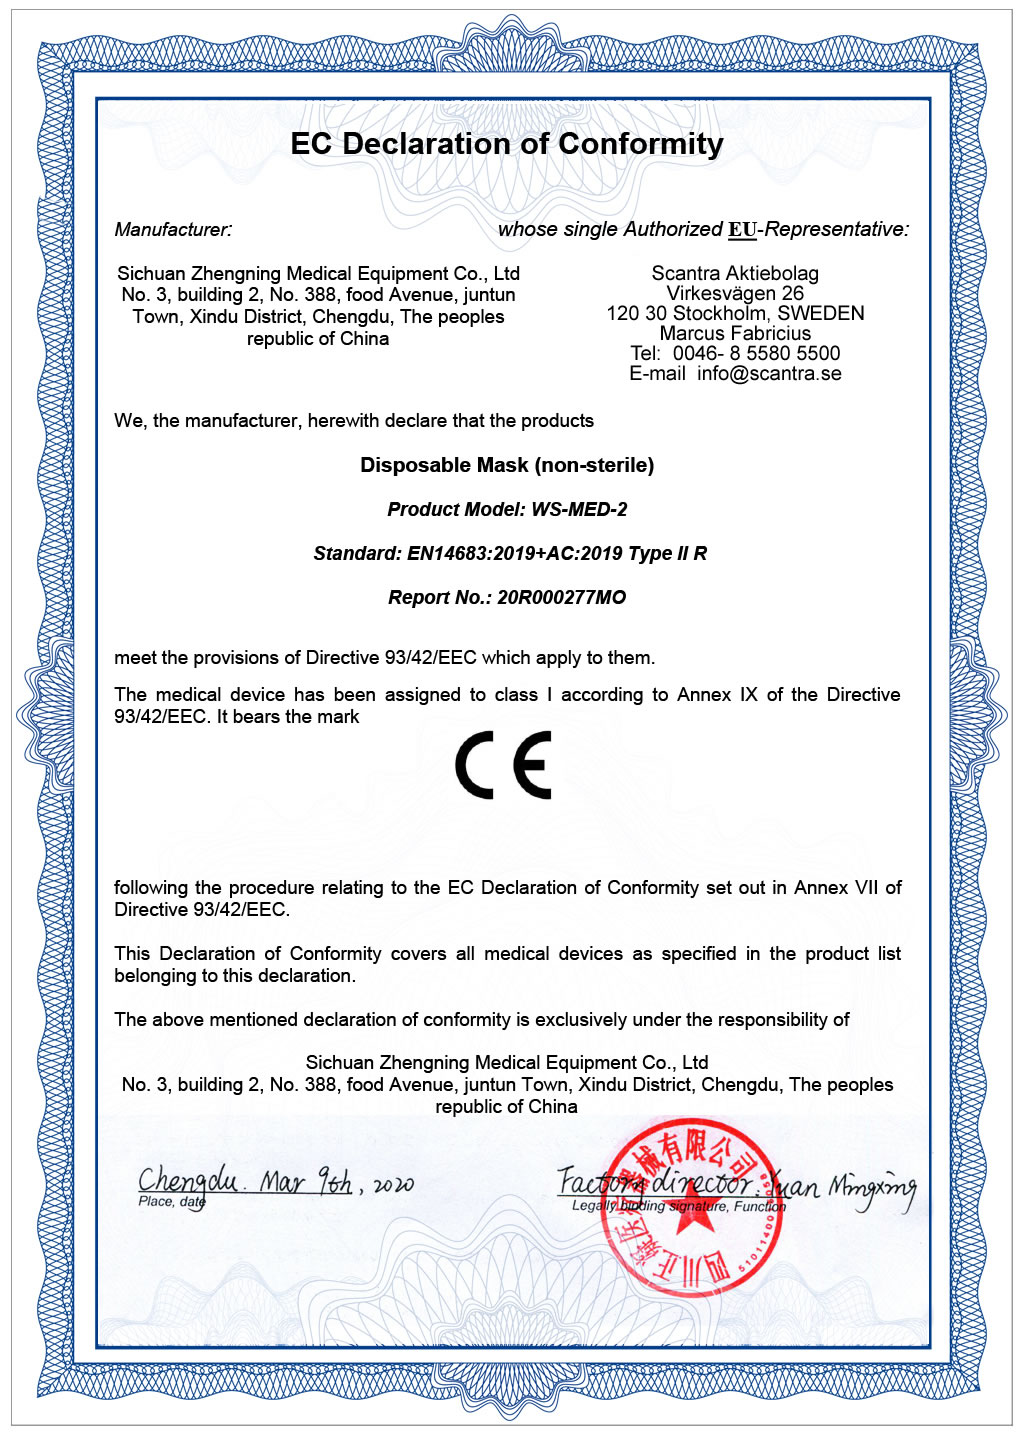 EC Declaration of Conformity for Medical Facemask TYPE II R for Scantra Aktiebolag